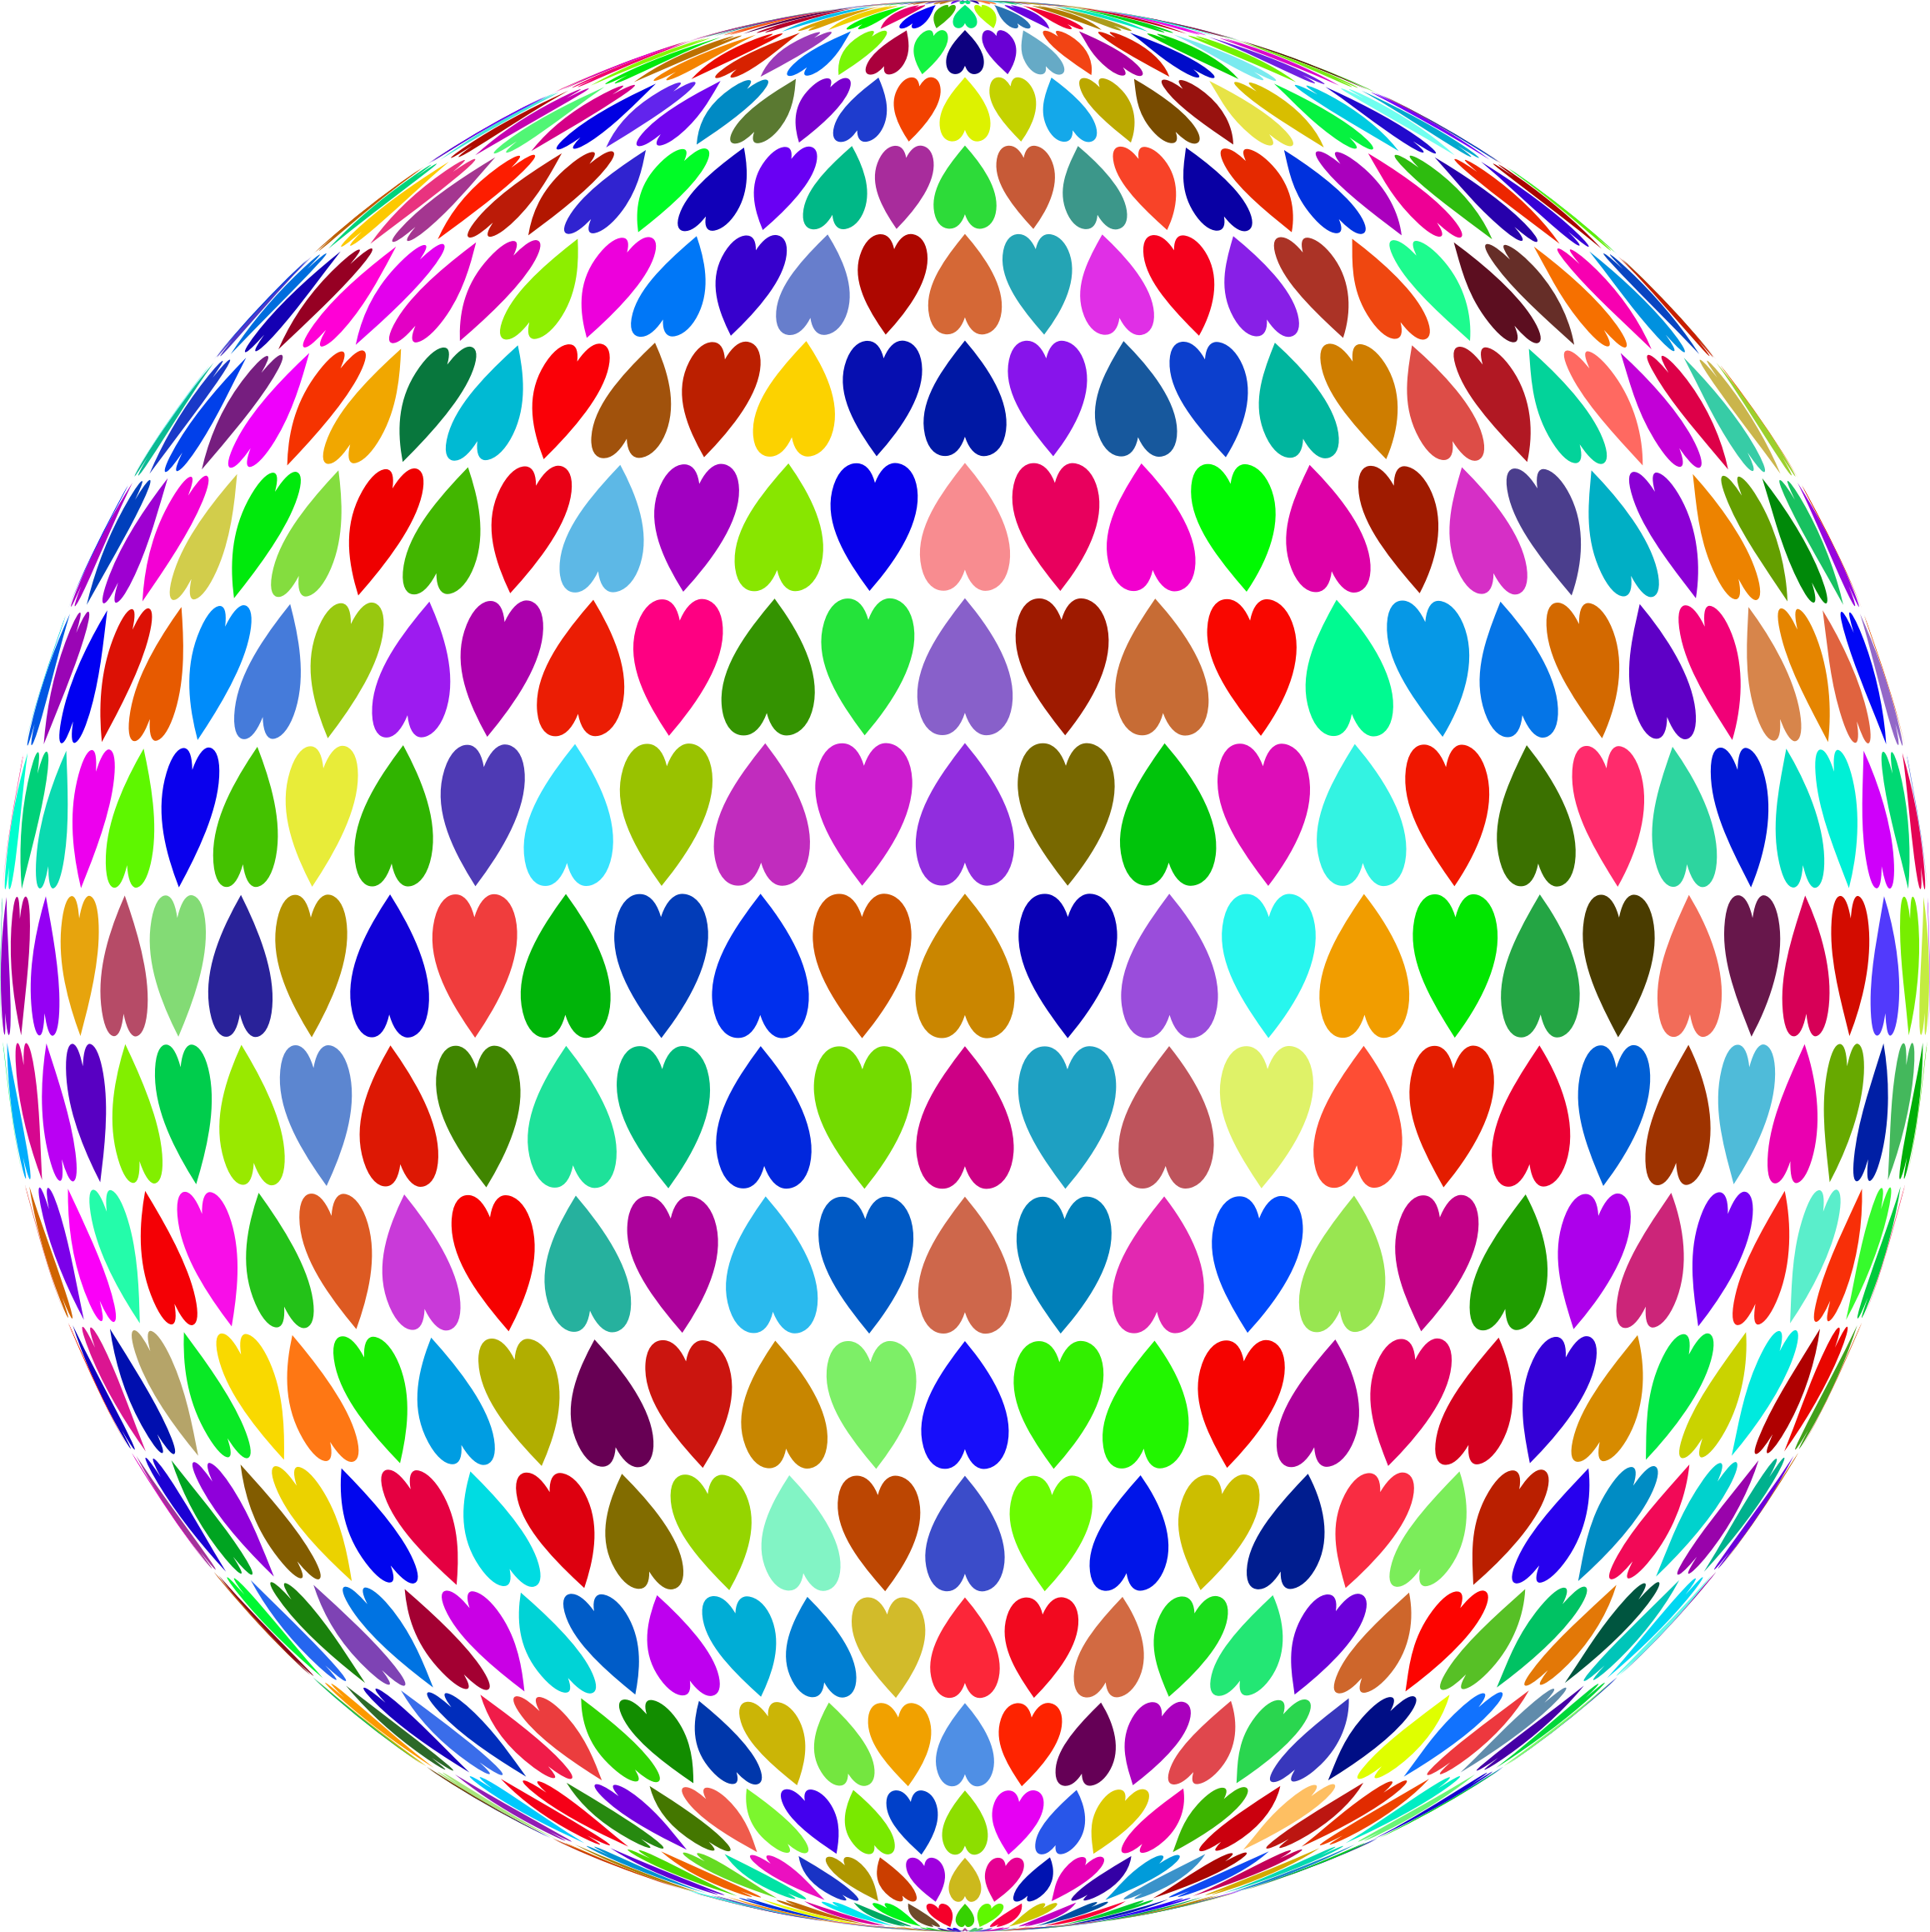 Prismatic Alternating Hearts Sphere by GDJ